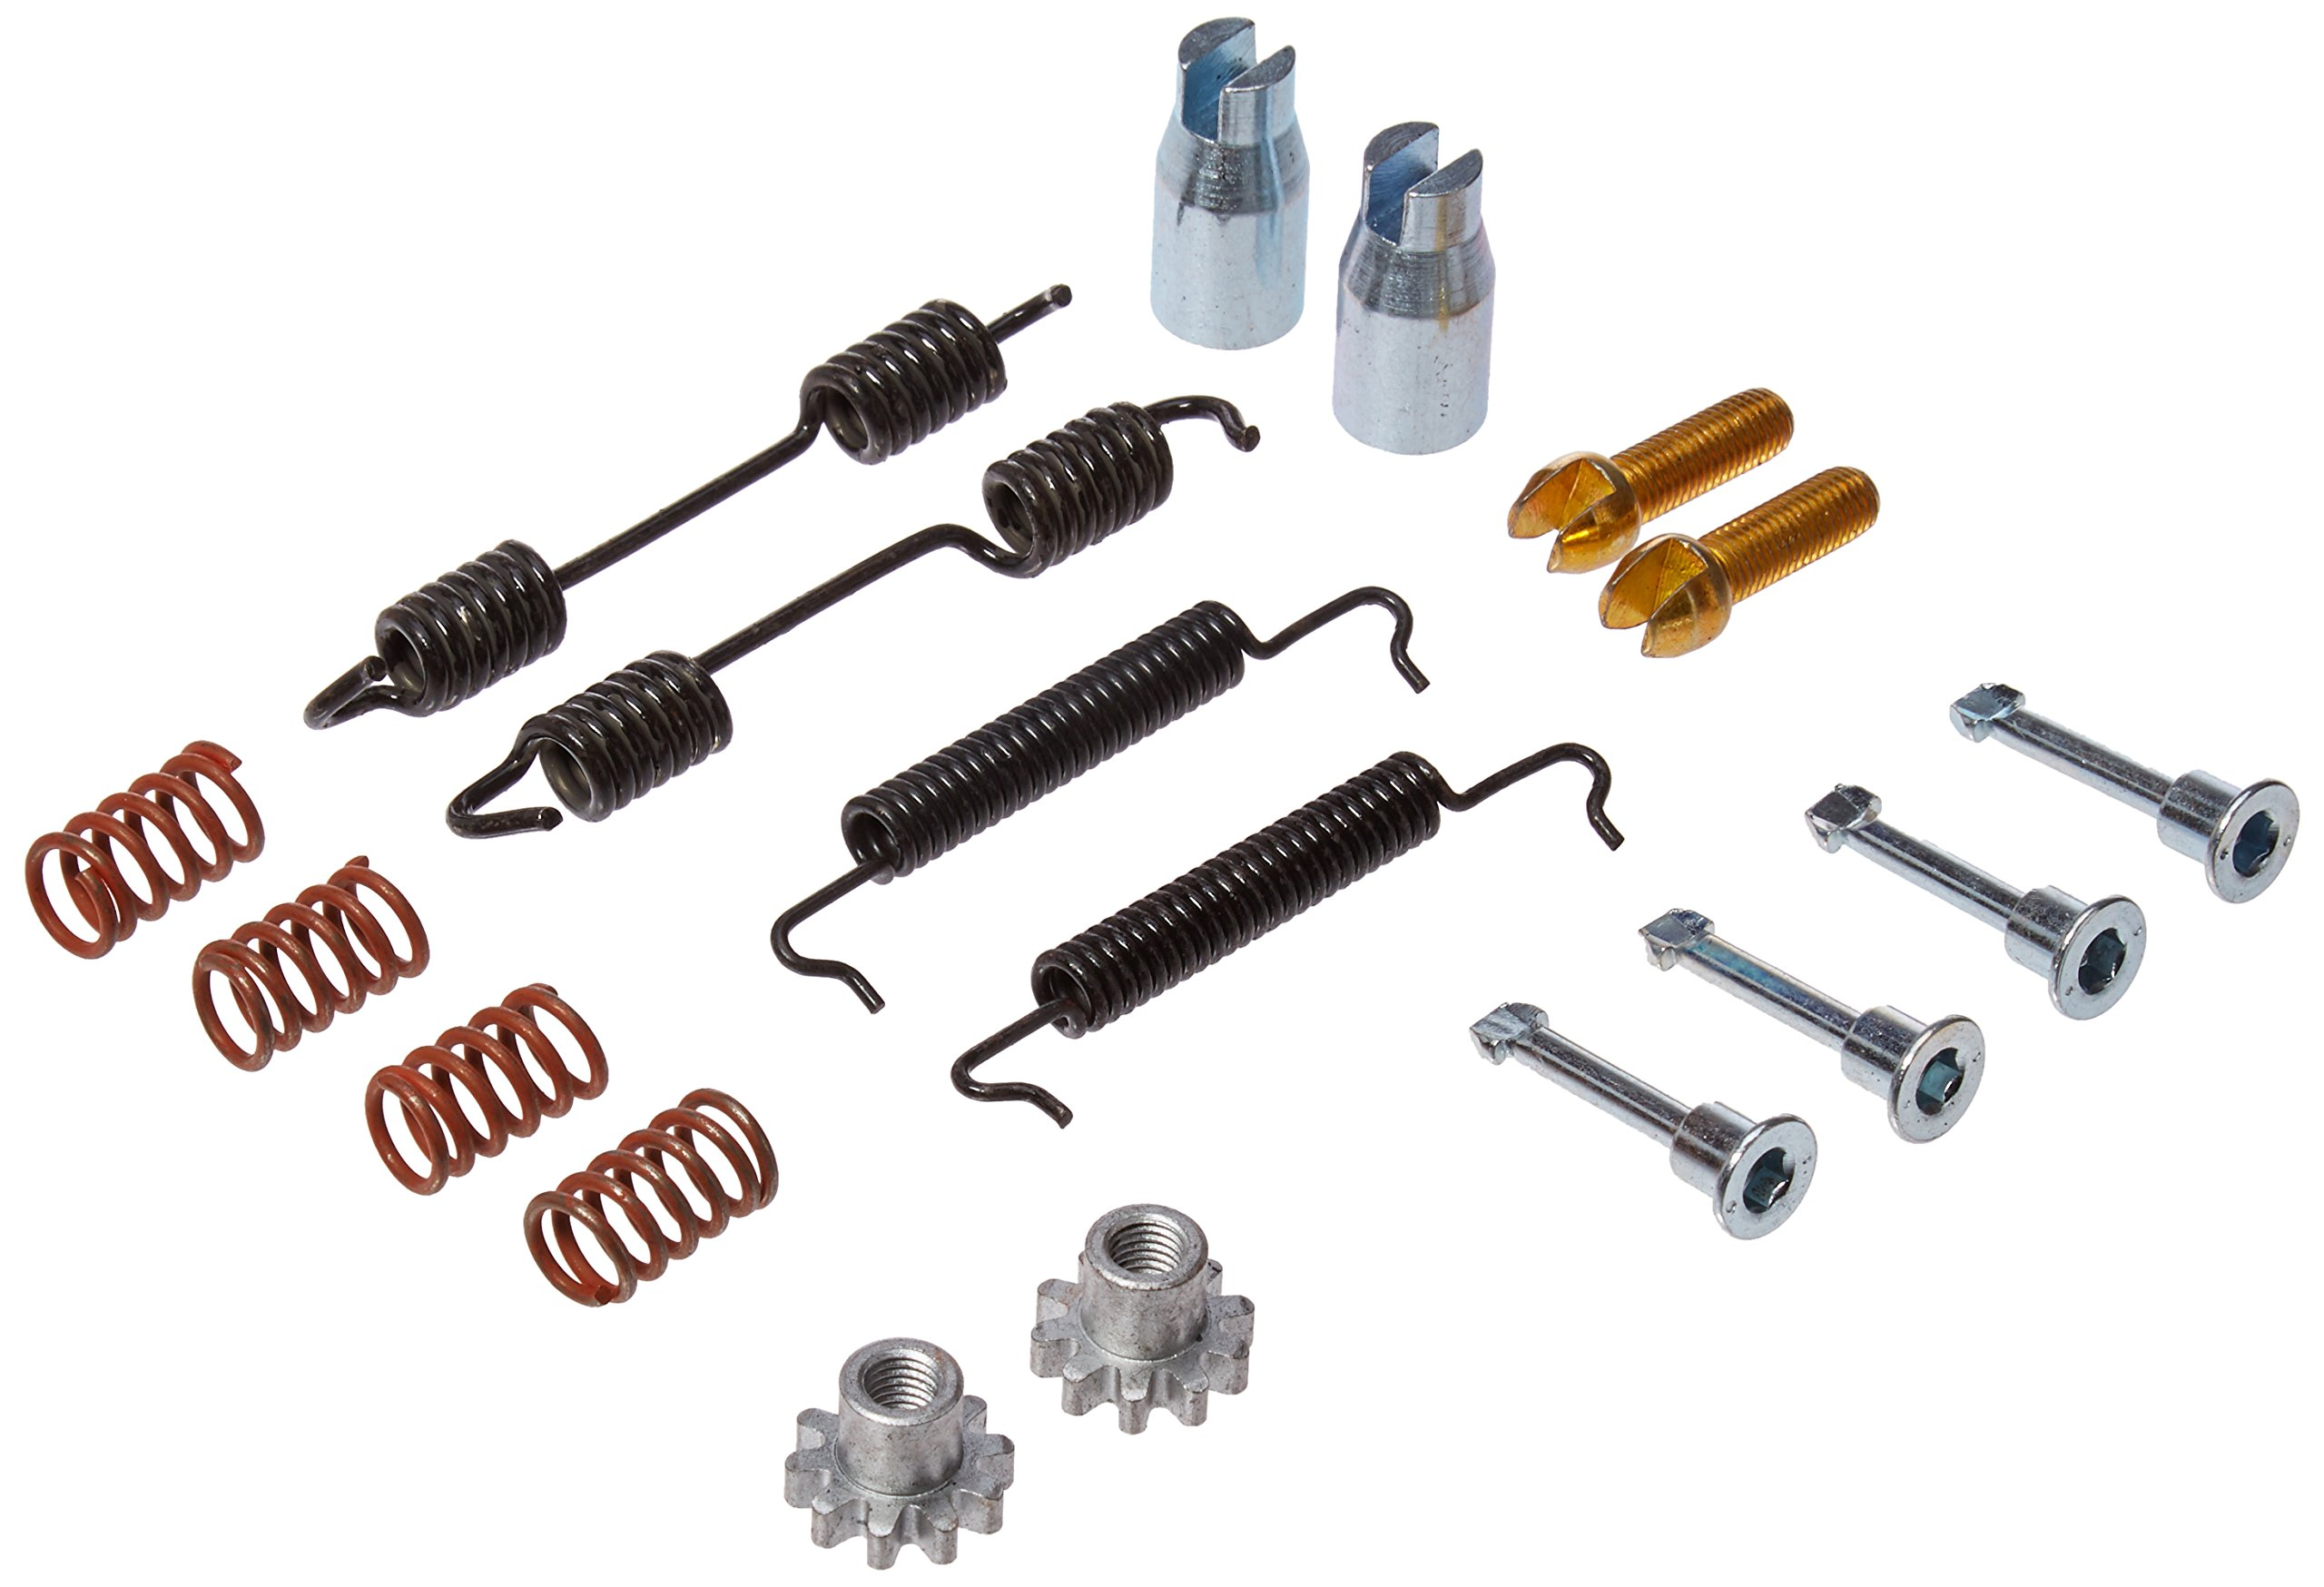 Carlson Quality Brake Parts 17422 Drum Brake Hardware Kit by Carlson